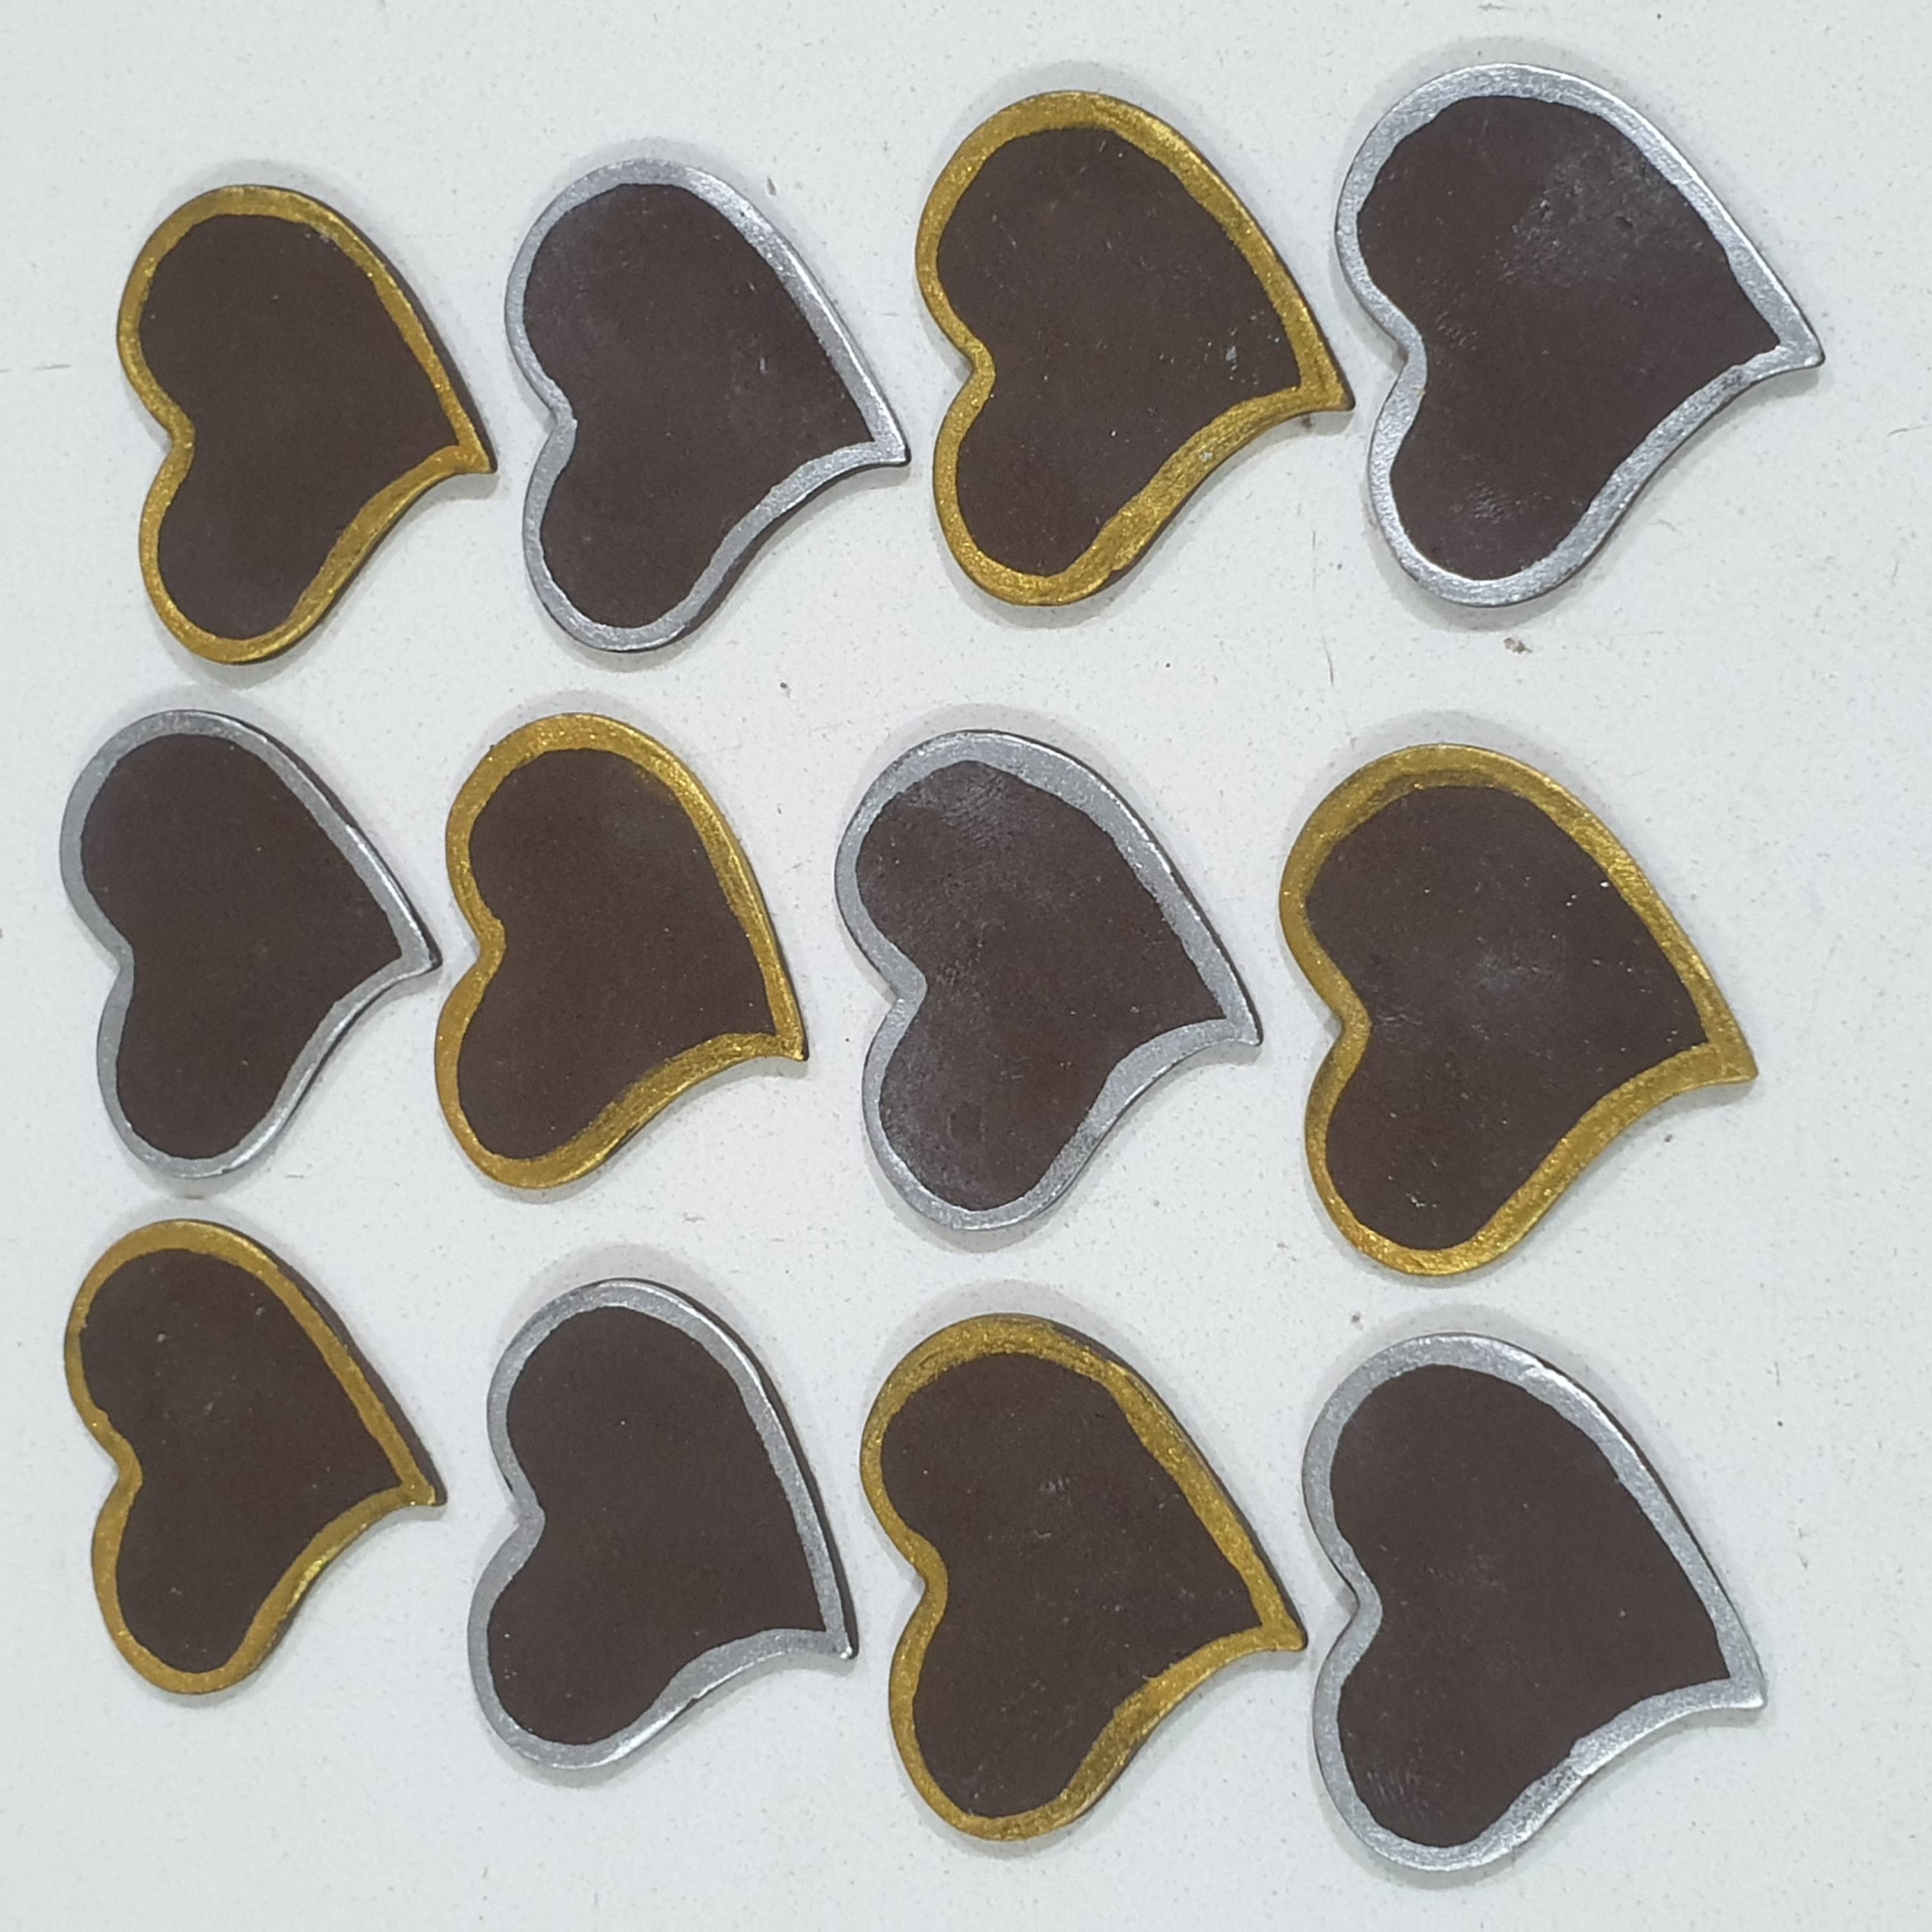 Gold&Silver Border Heart Chocolate Decorations